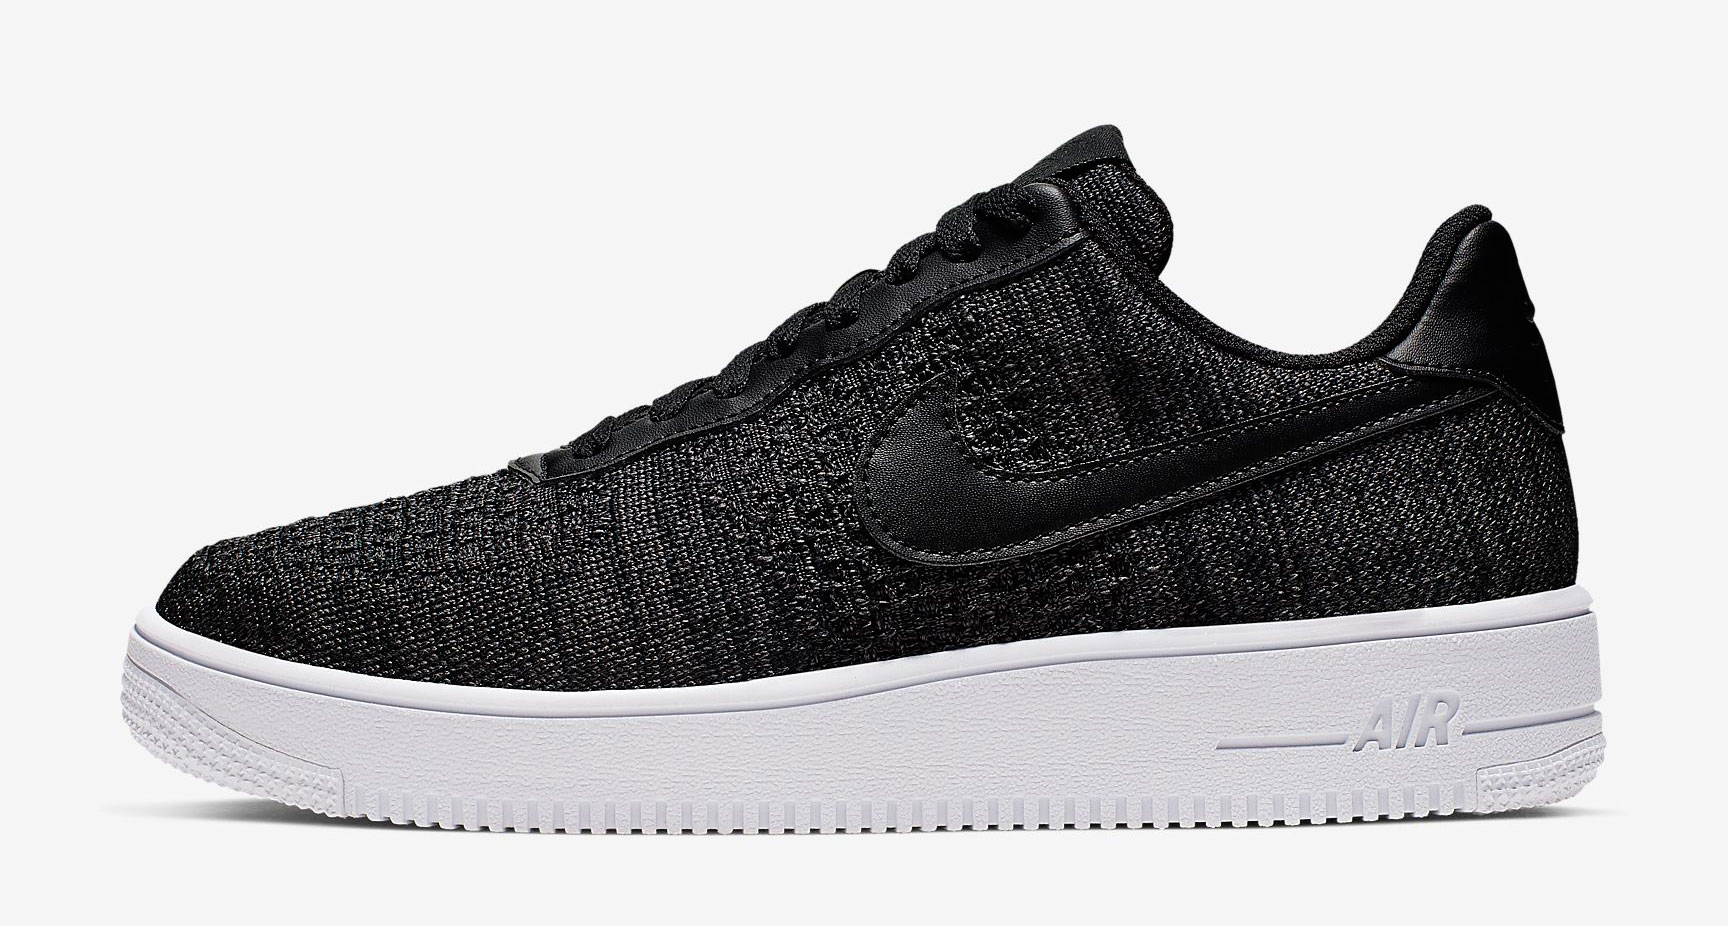 nike-air-force-1-flyknit-2-black-white-release-date